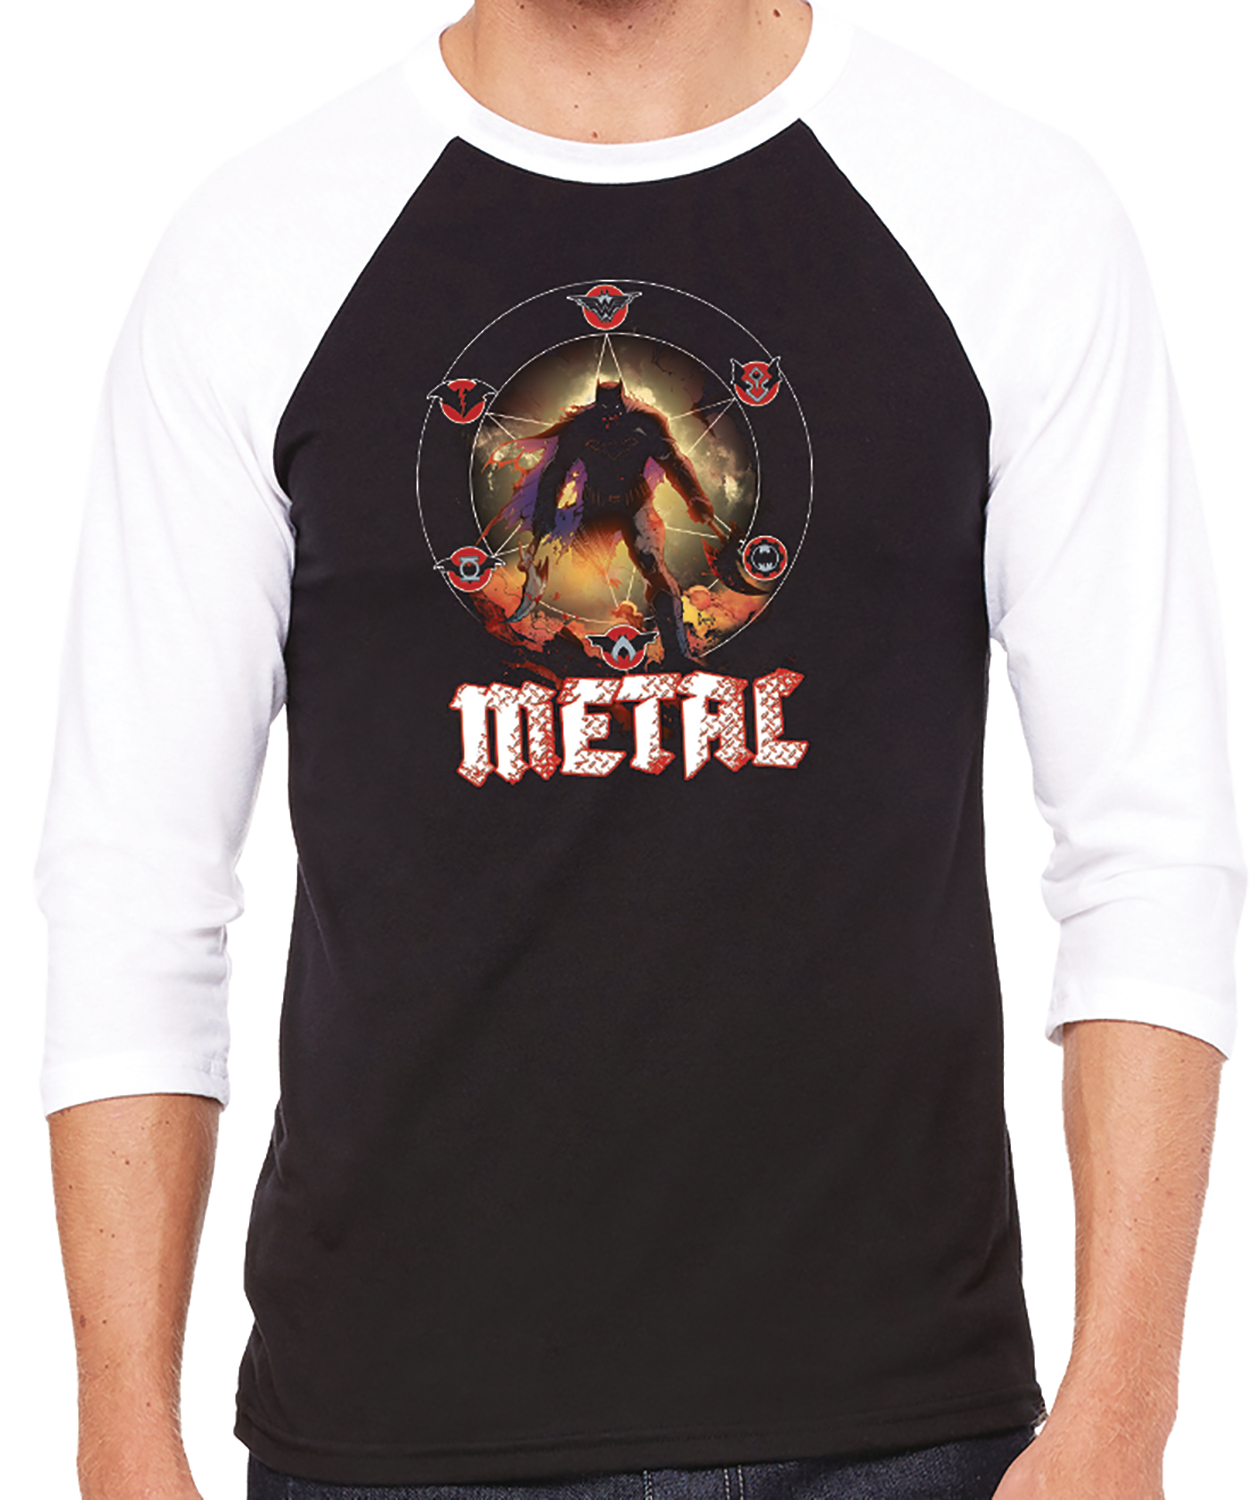 DARK NIGHTS METAL TOUR BASEBALL SHIRT XXL